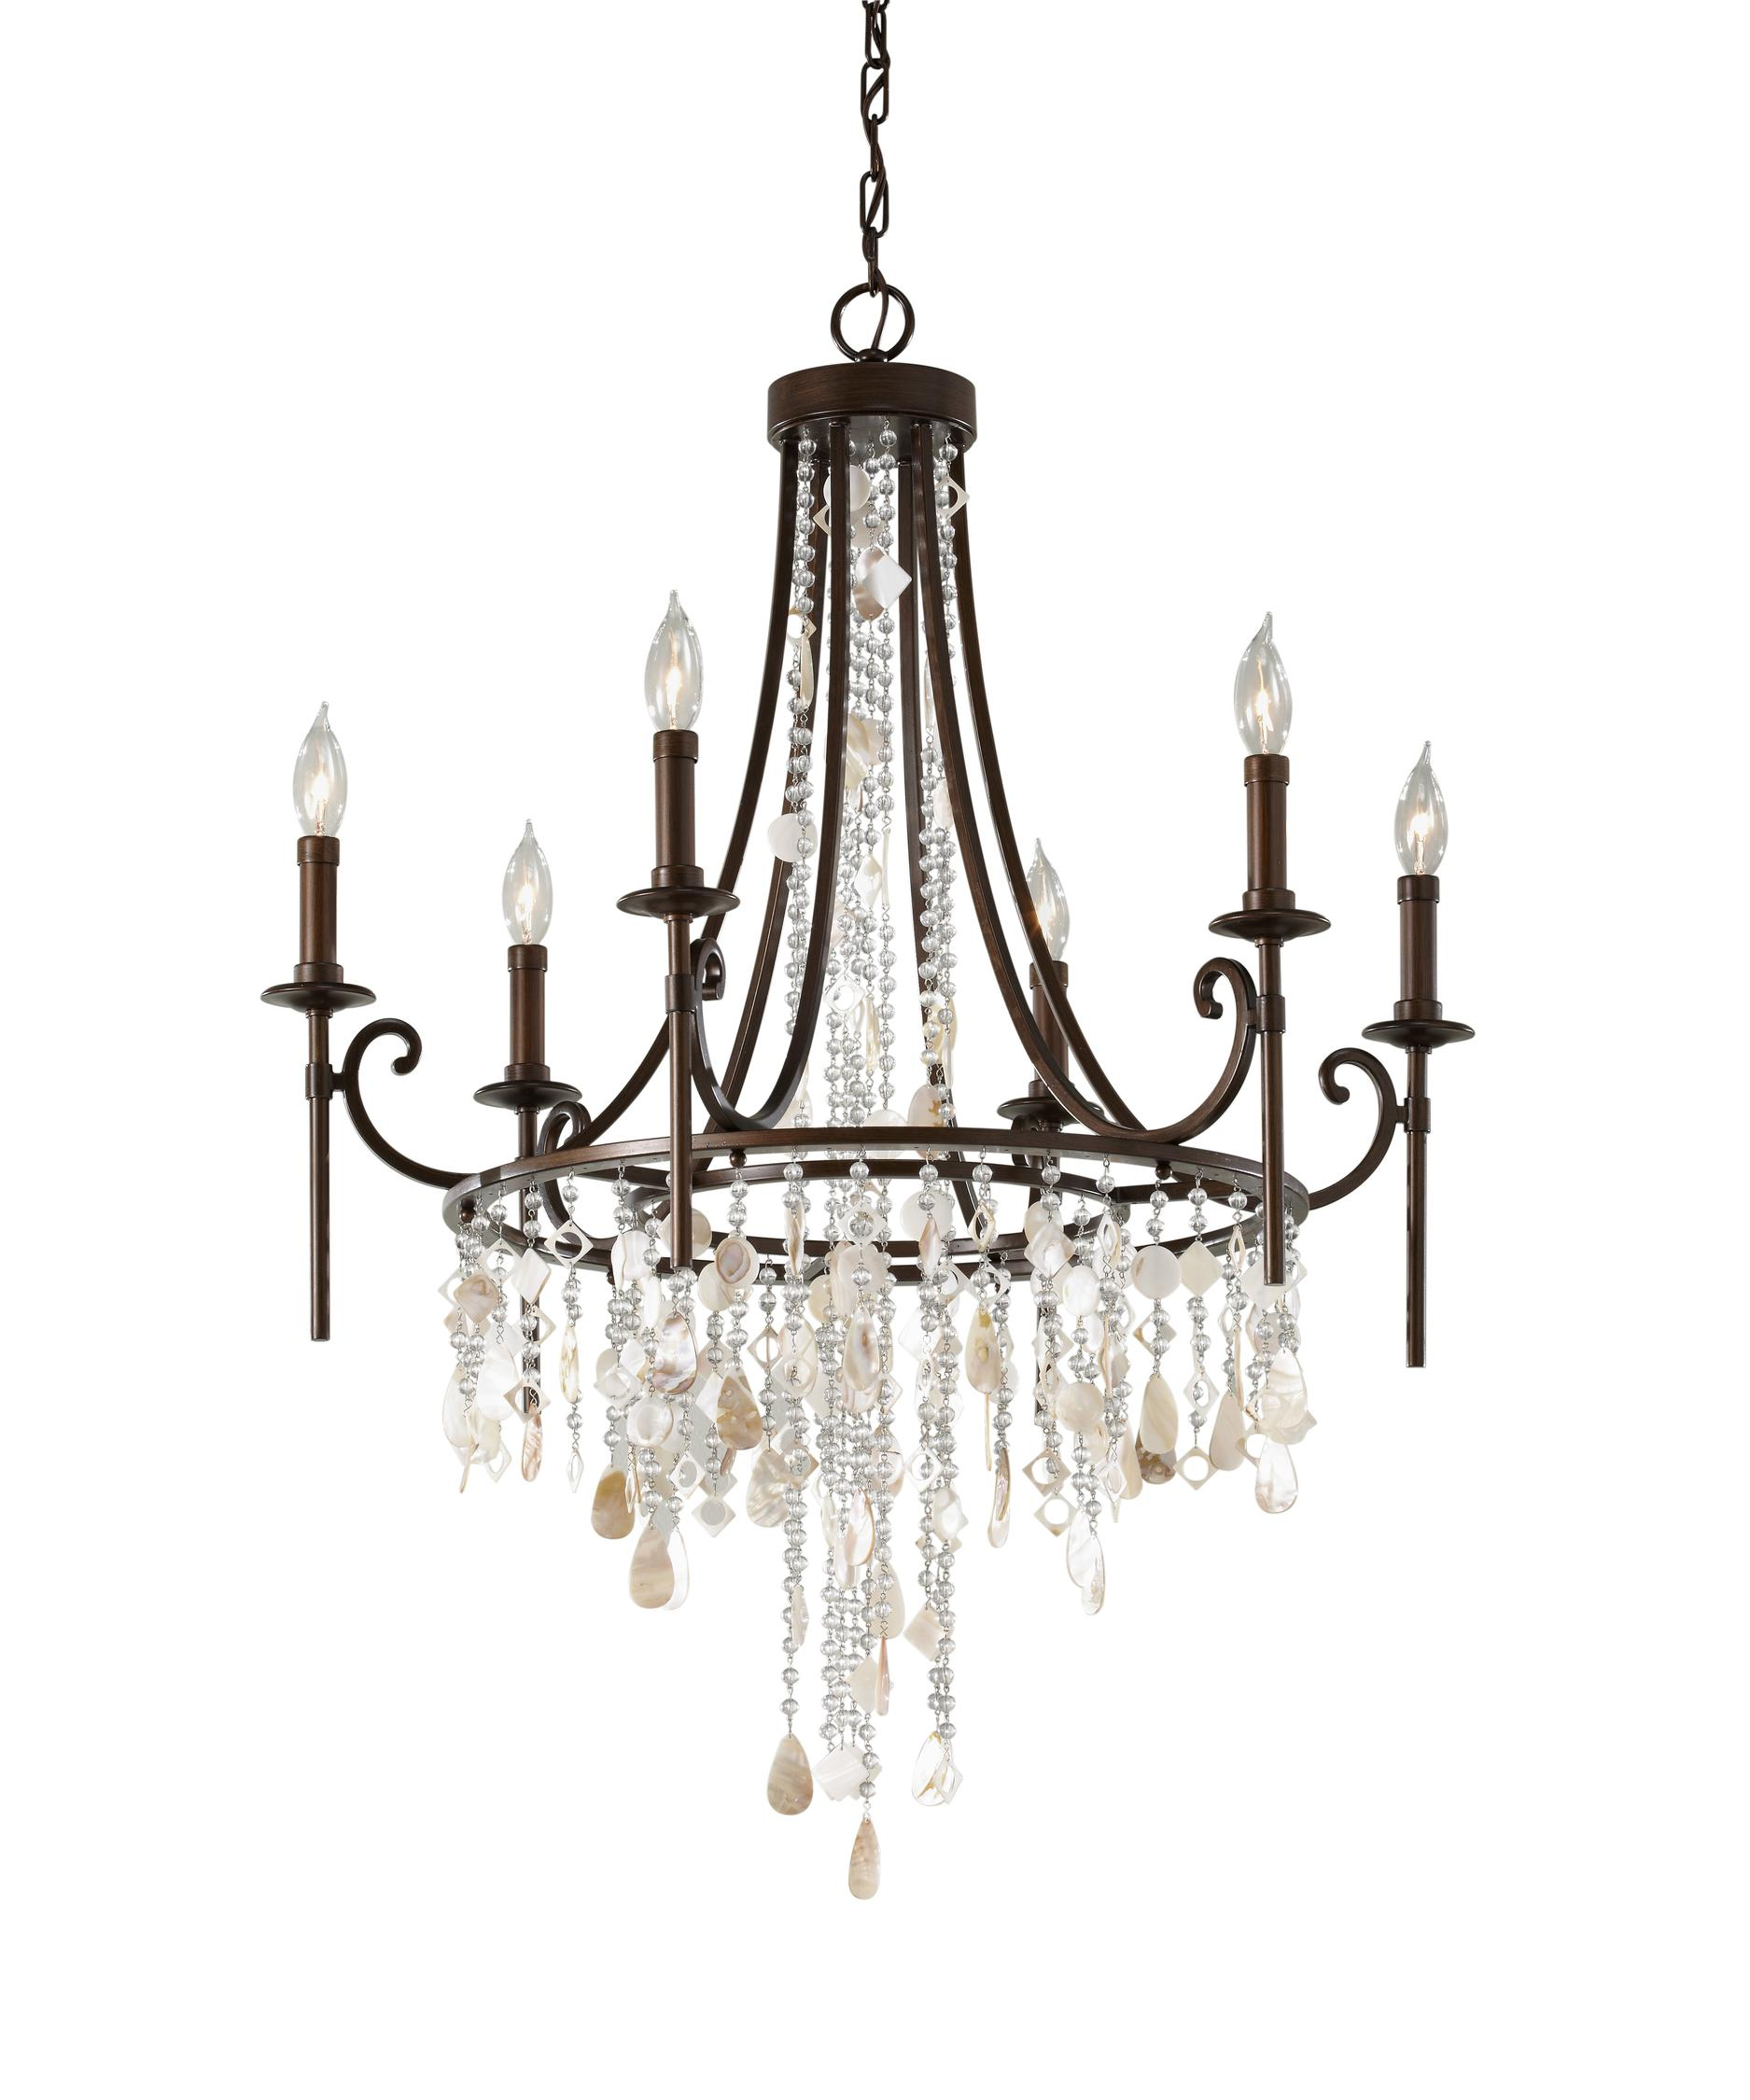 Murray Feiss Fusion Collection: Murray Feiss F2660-6 Cascade 28 Inch Chandelier